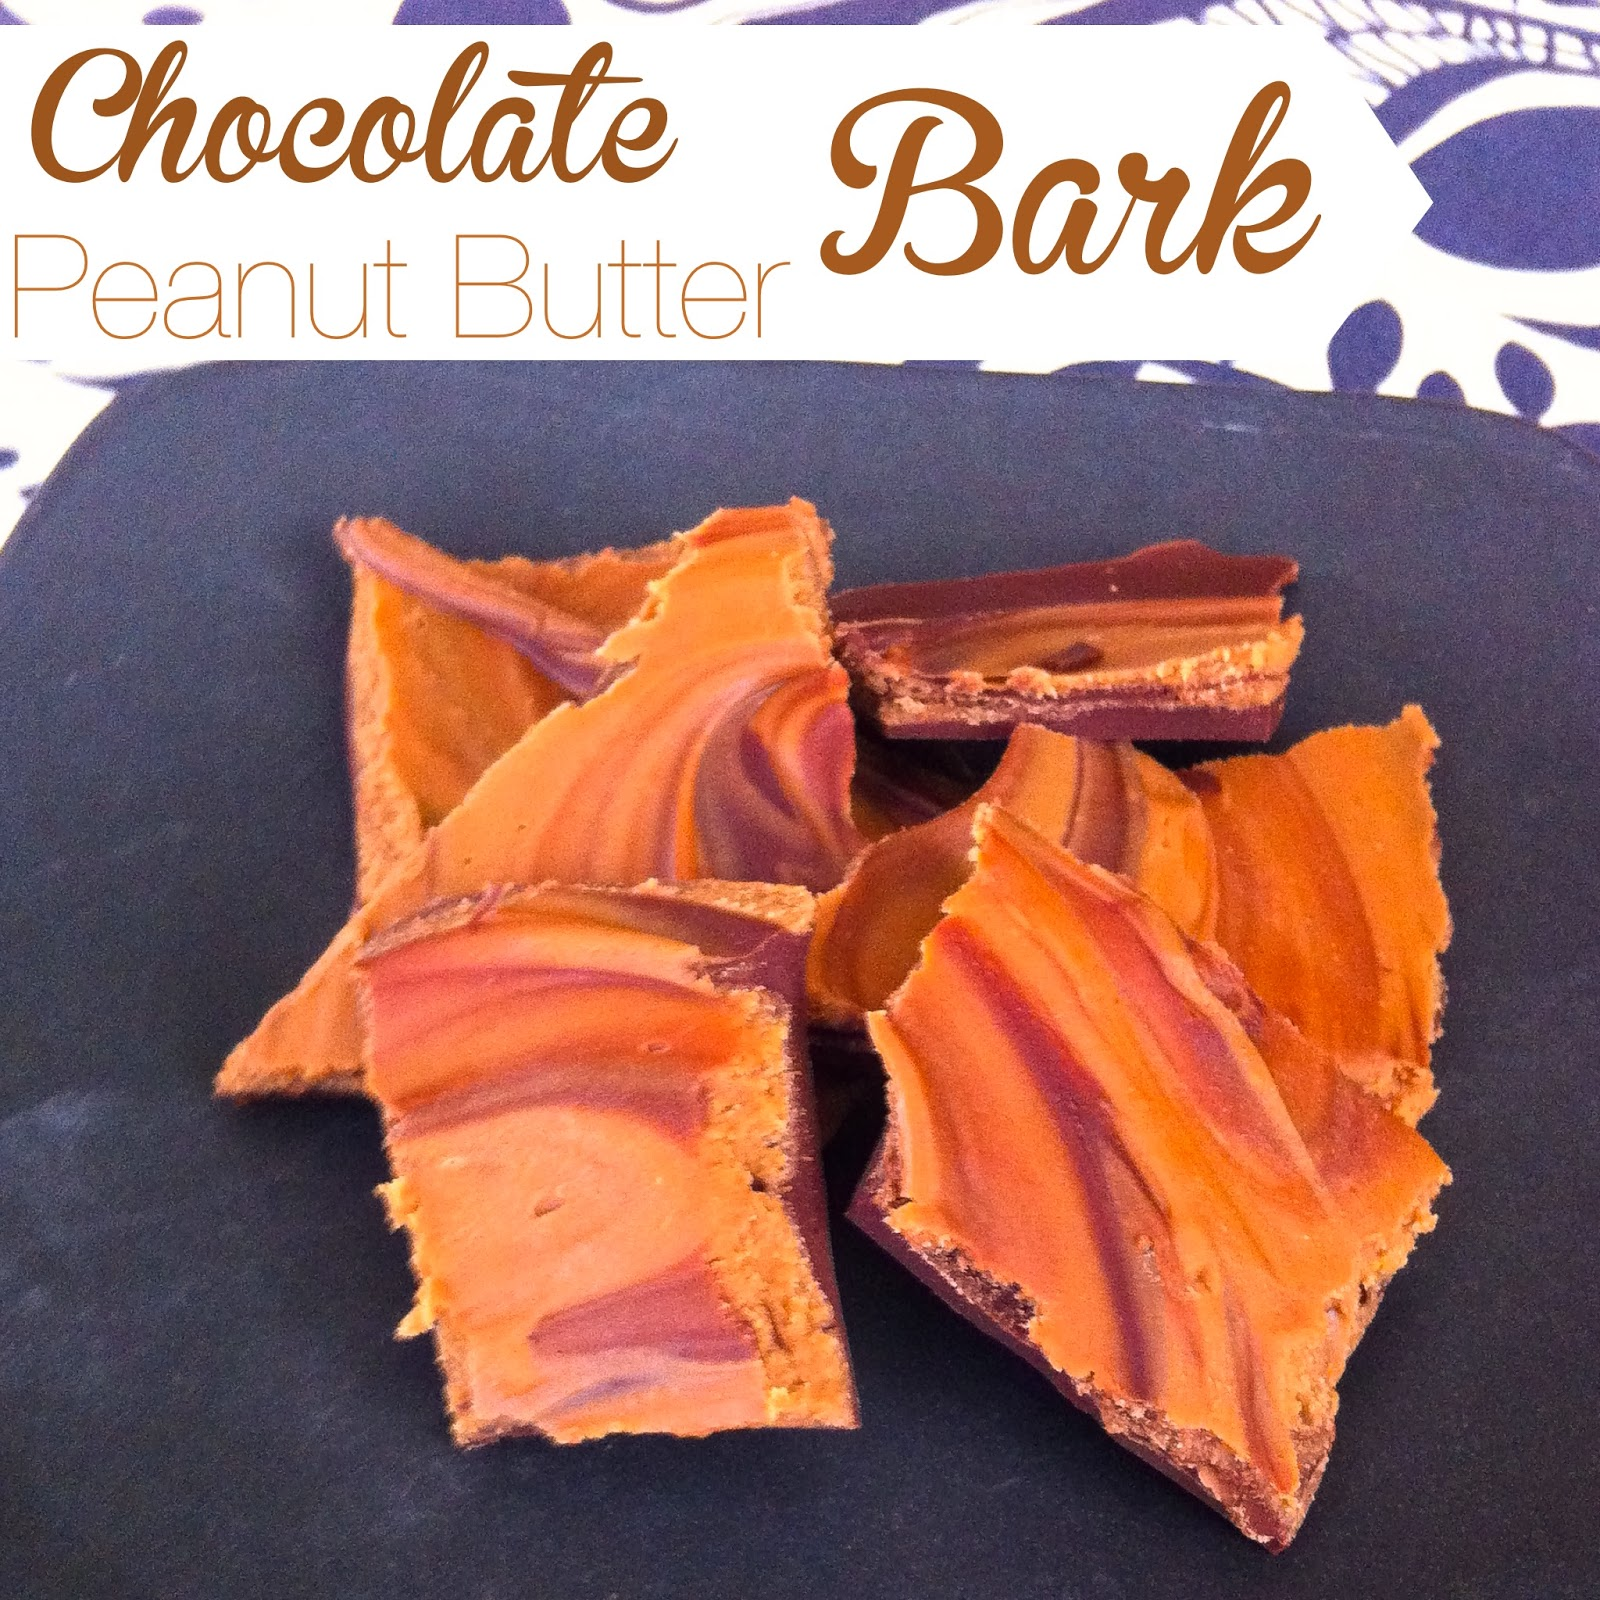 Chocolate Peanut Butter Bark that is easy and AMAZINGLY tasty. Alohamora Open a Book http://alohamoraopenabook.blogspot.com/